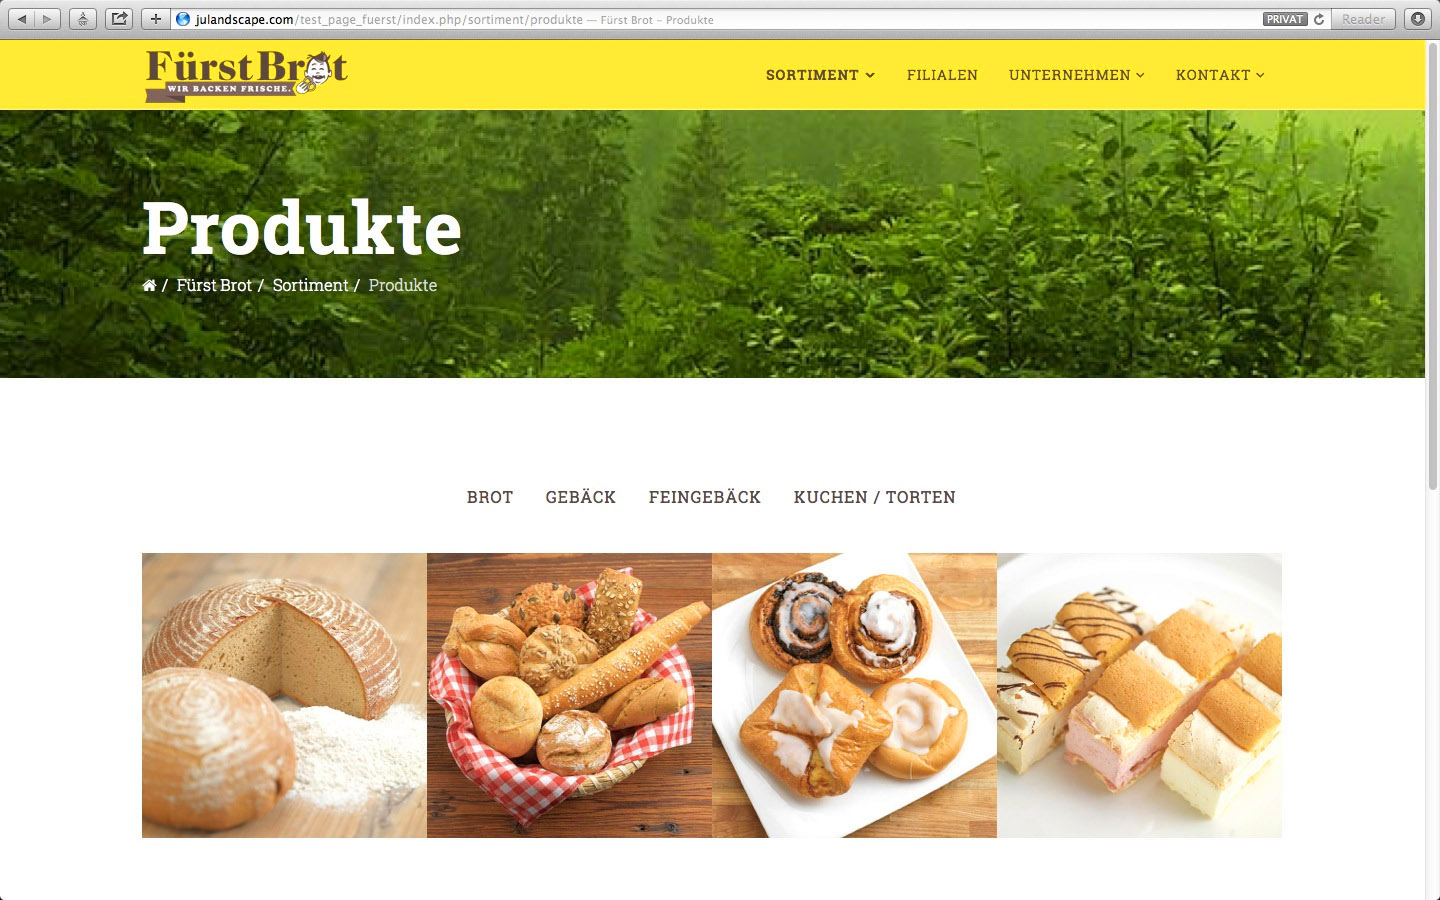 Fürst-Brot_website